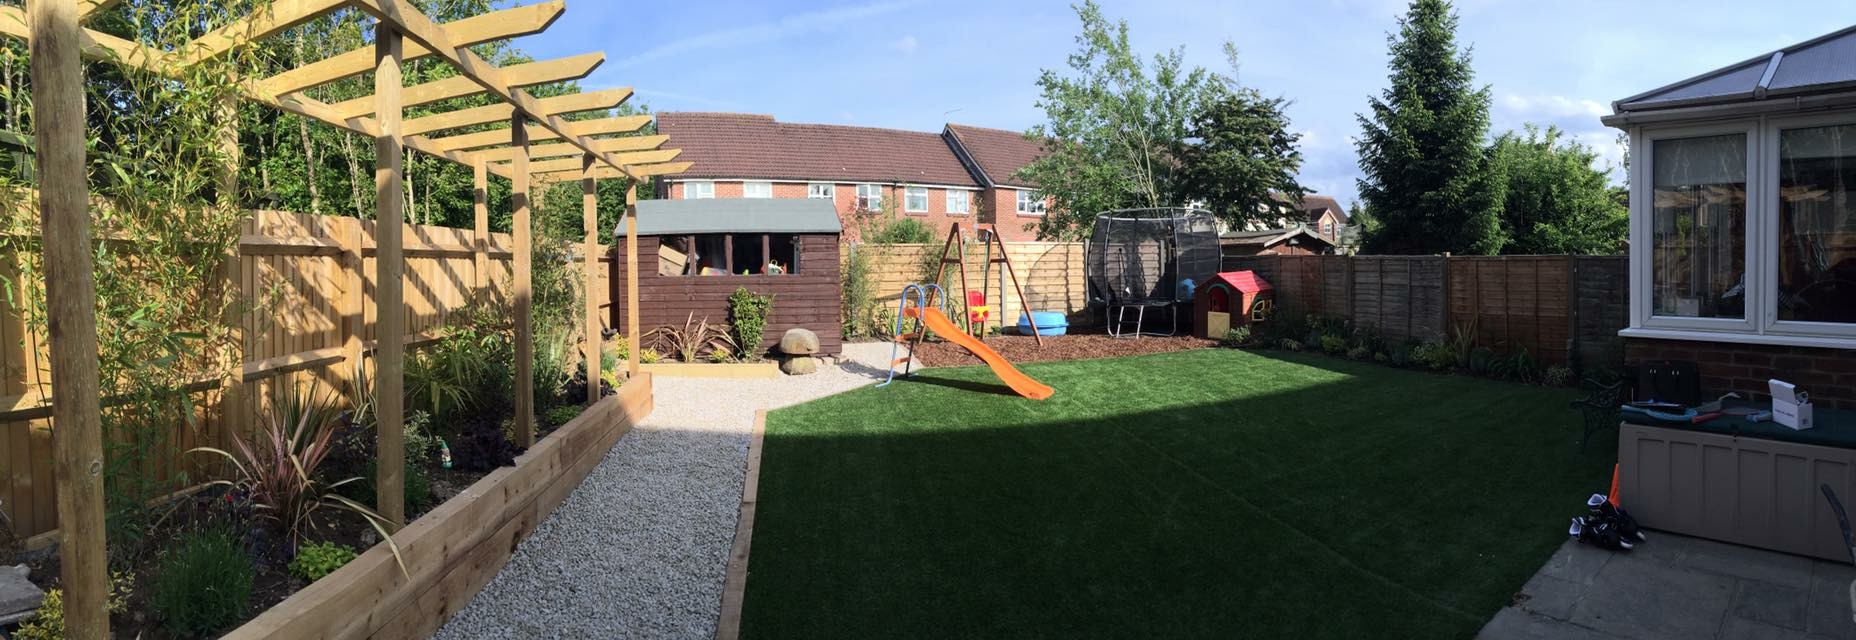 Garden makeover in horsham area, child friendly